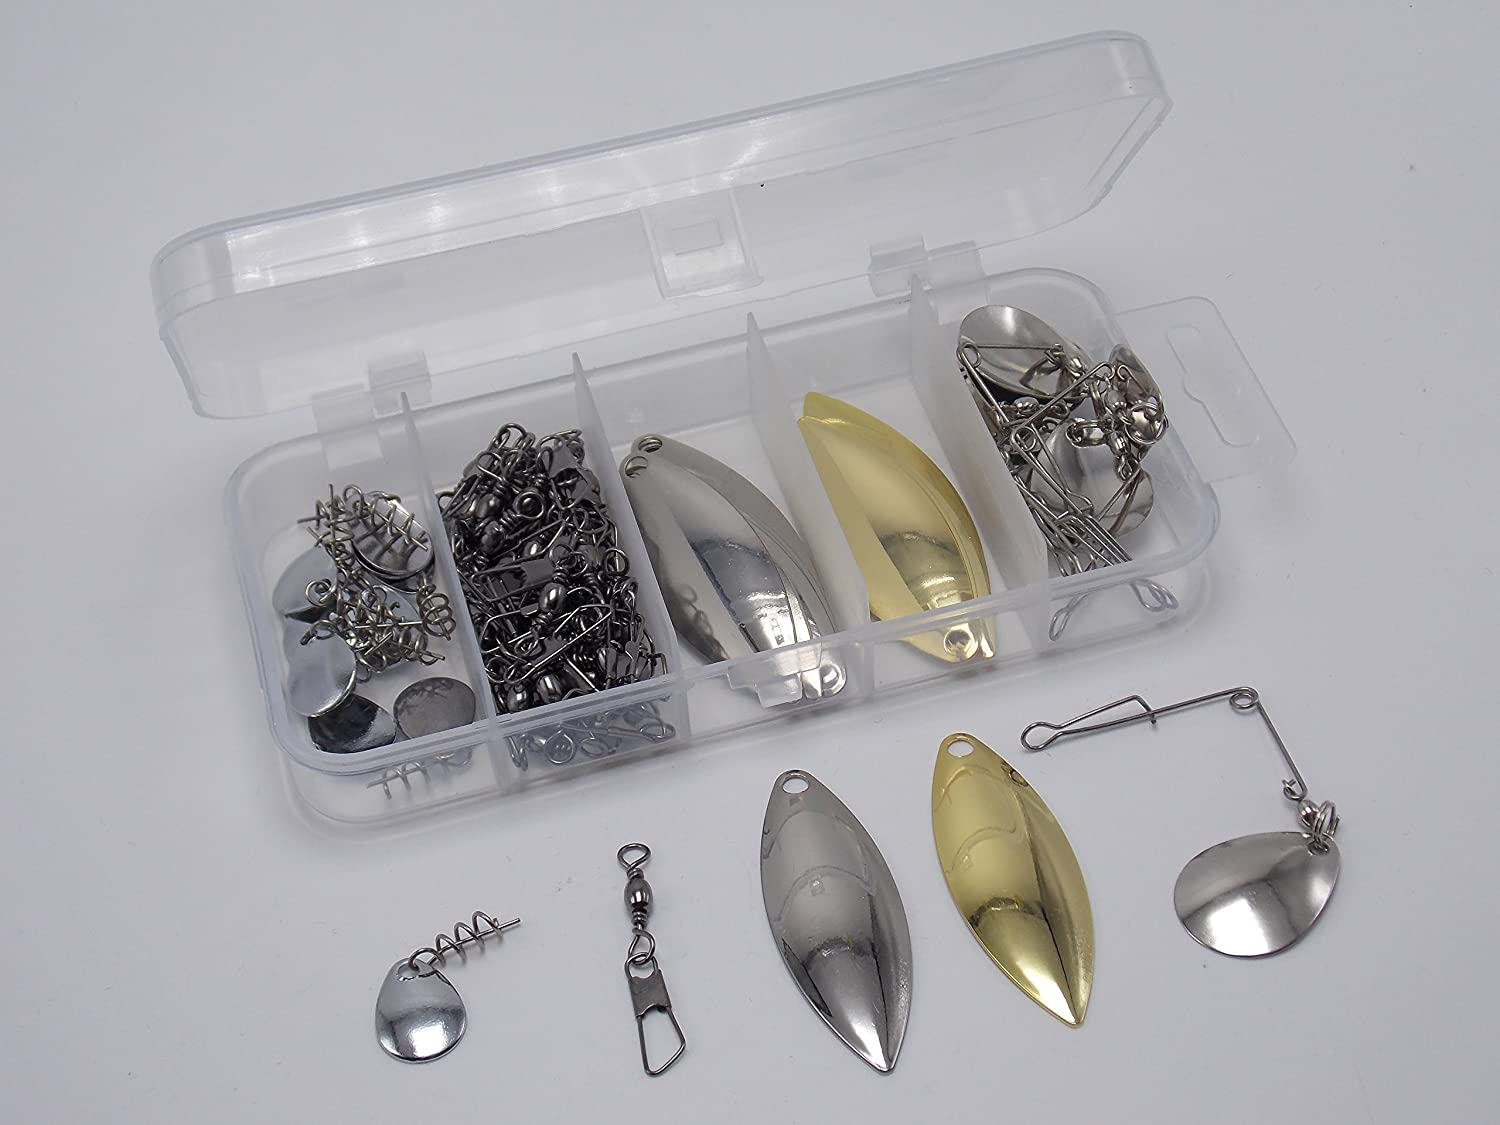 41pcs spinner and buzz baits lure blades with fishing lures ball bearing swivel